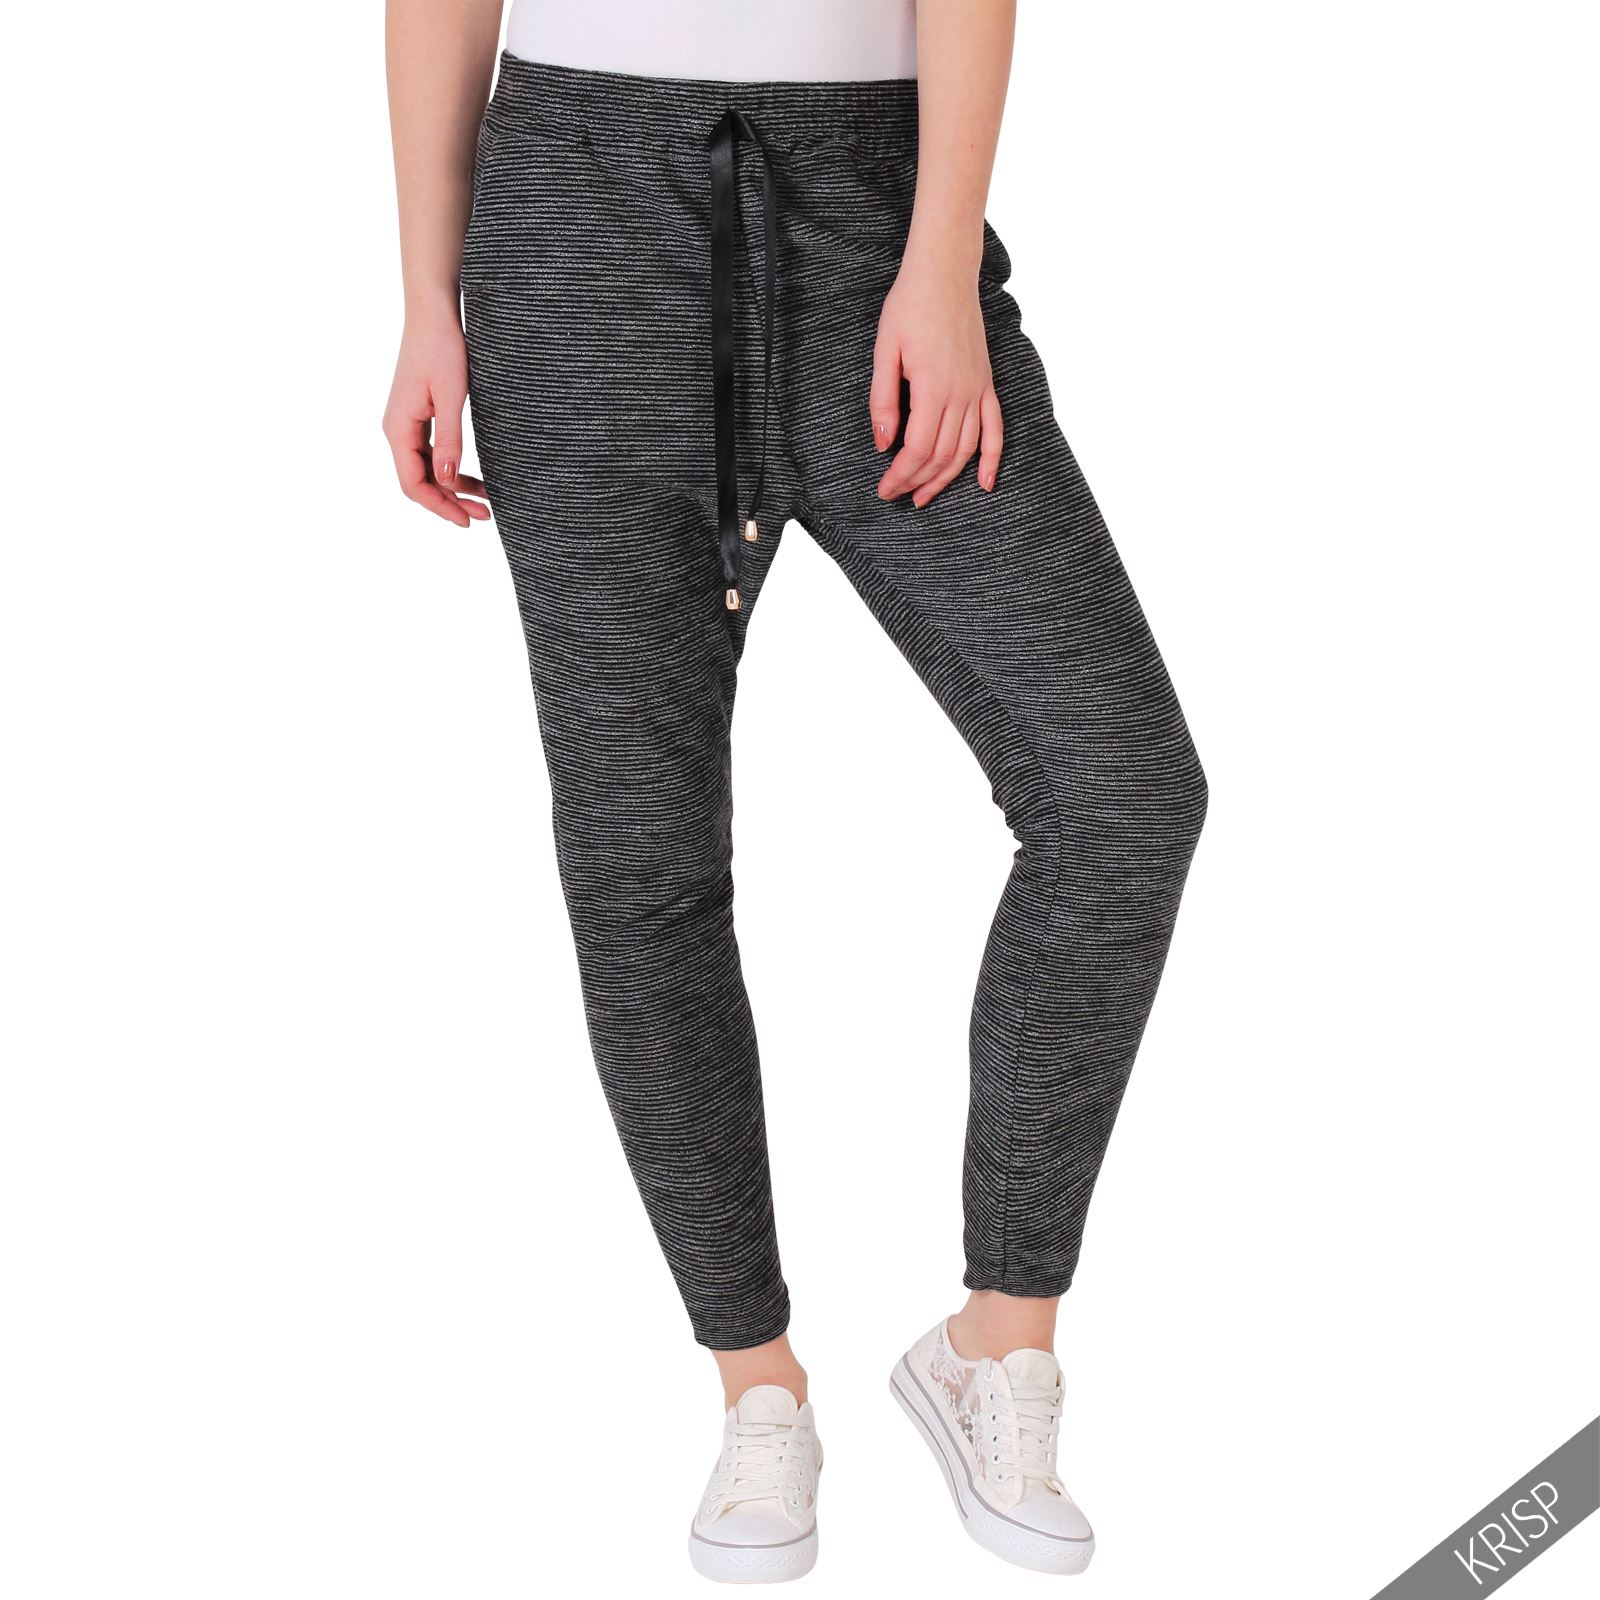 Cool  ACKERMANN WOMENS COTTON JERSEY JOGGING PANTS  Clothing Style